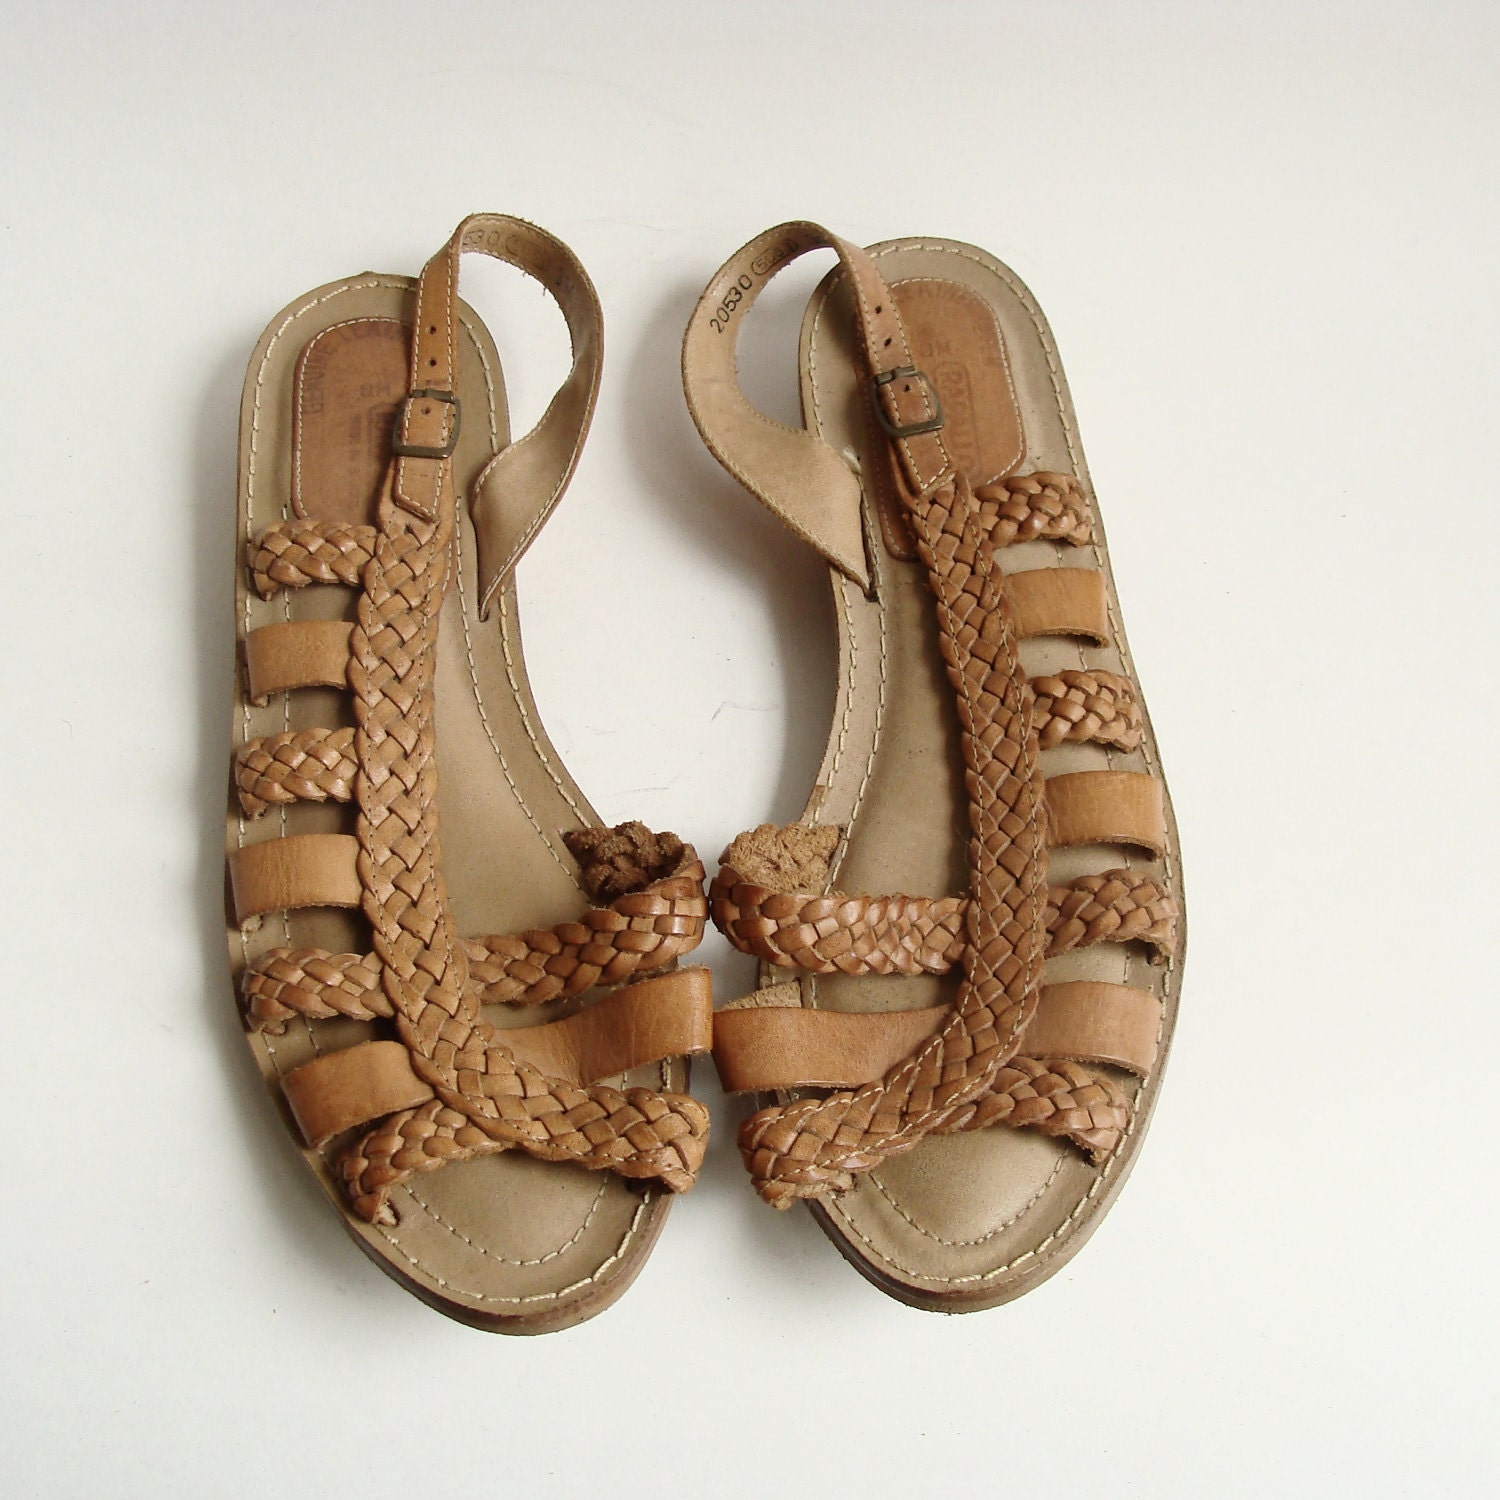 shoes 8 woven leather sandals braided leather sandals